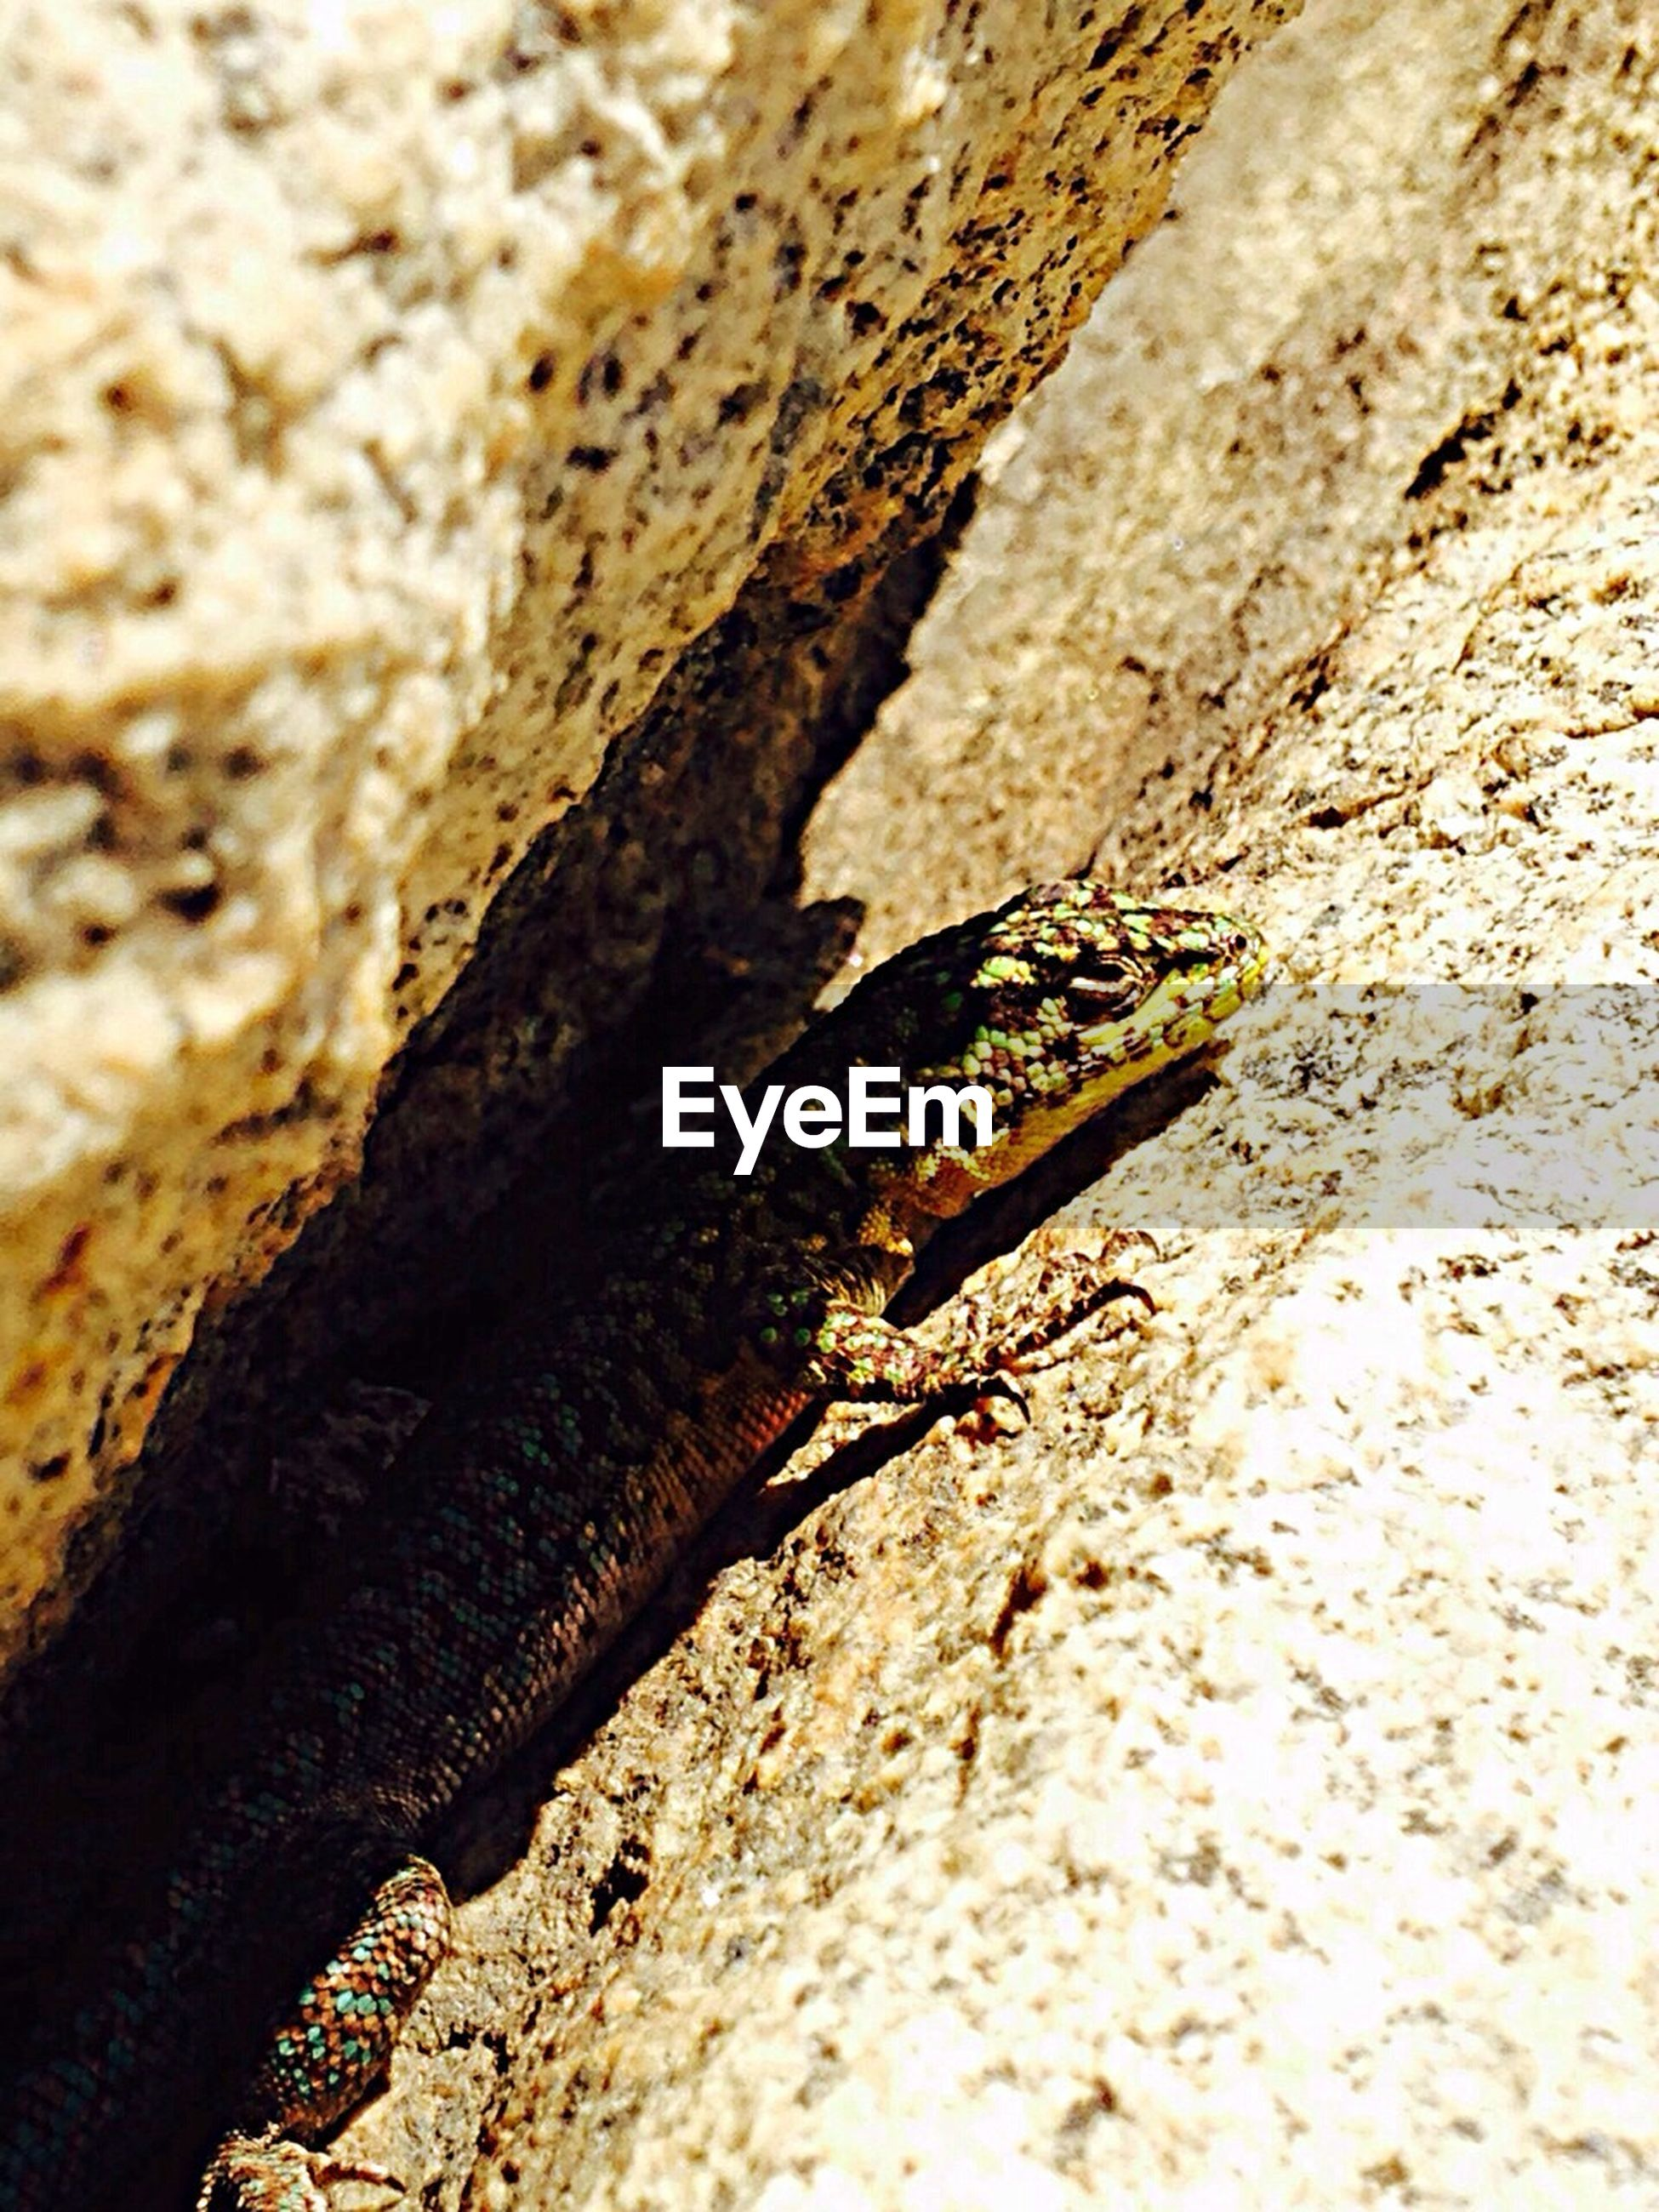 animals in the wild, animal themes, one animal, wildlife, insect, close-up, selective focus, nature, rock - object, reptile, high angle view, textured, lizard, zoology, outdoors, rough, day, focus on foreground, rock, no people